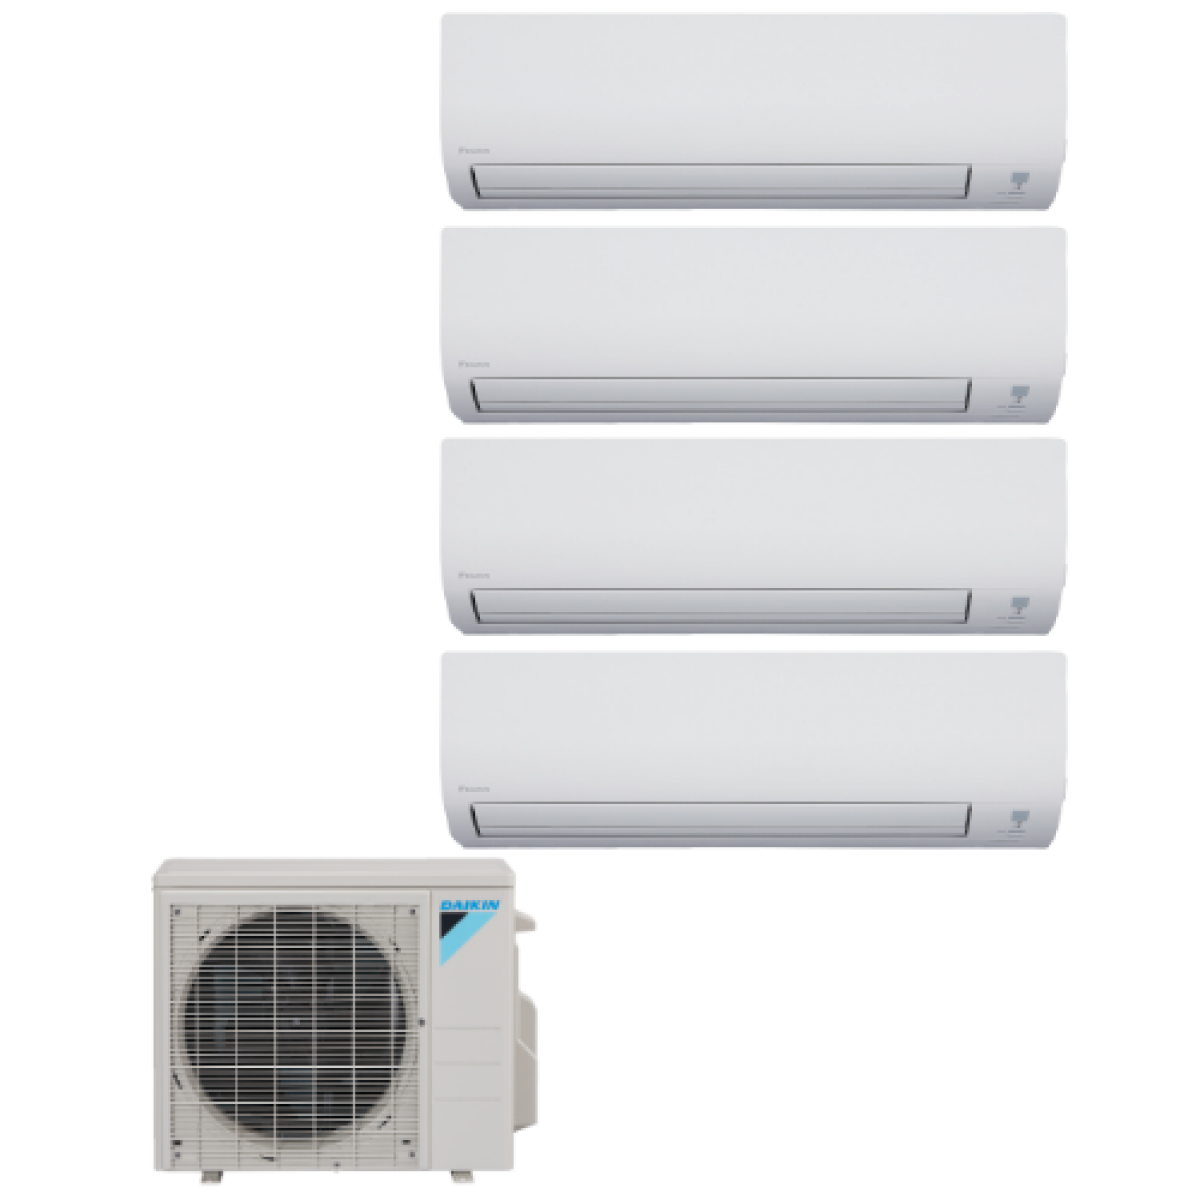 Daikin 4 zone 36k btu heat pump with four 4 9k btu for Ductless ac